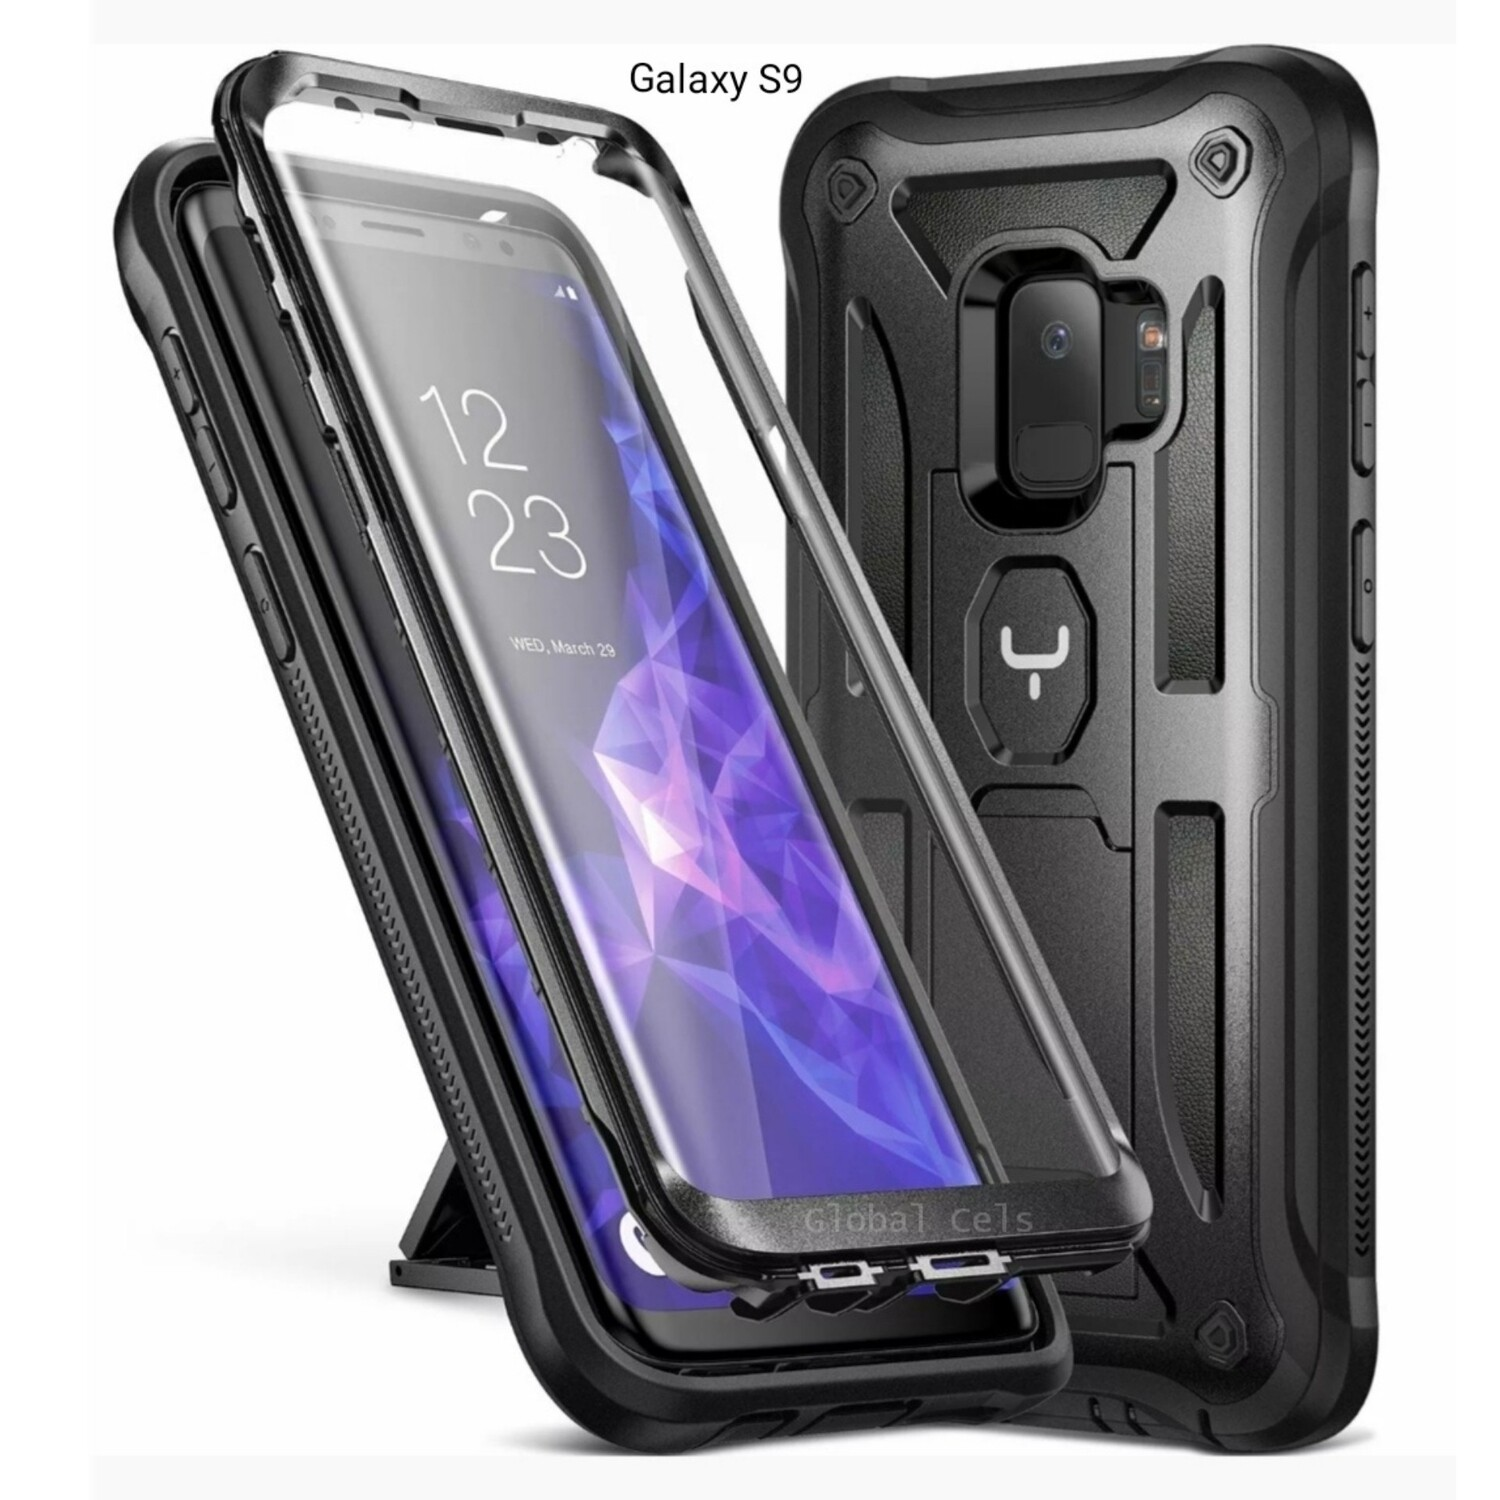 Case Funda Galaxy S9 Negros c/ parador vertical y horizontal